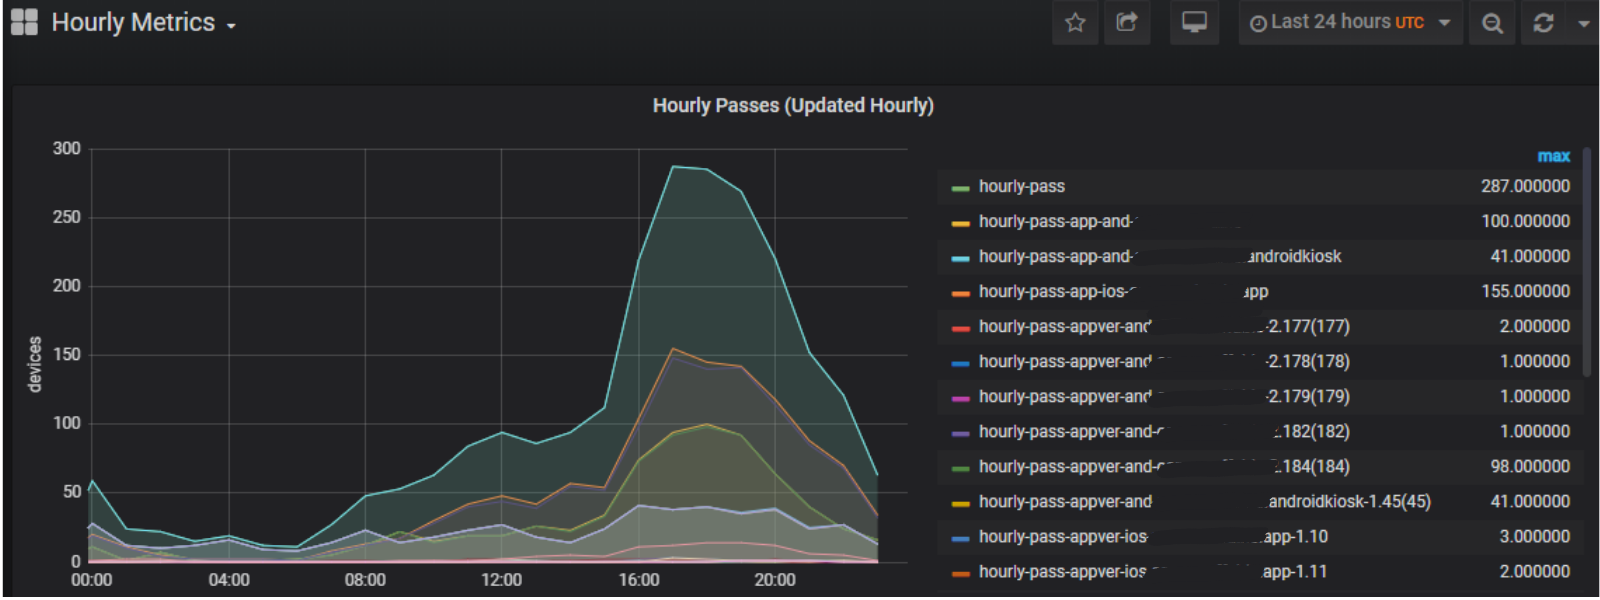 Screenshot of Approov customer metrics graph showing hourly passes